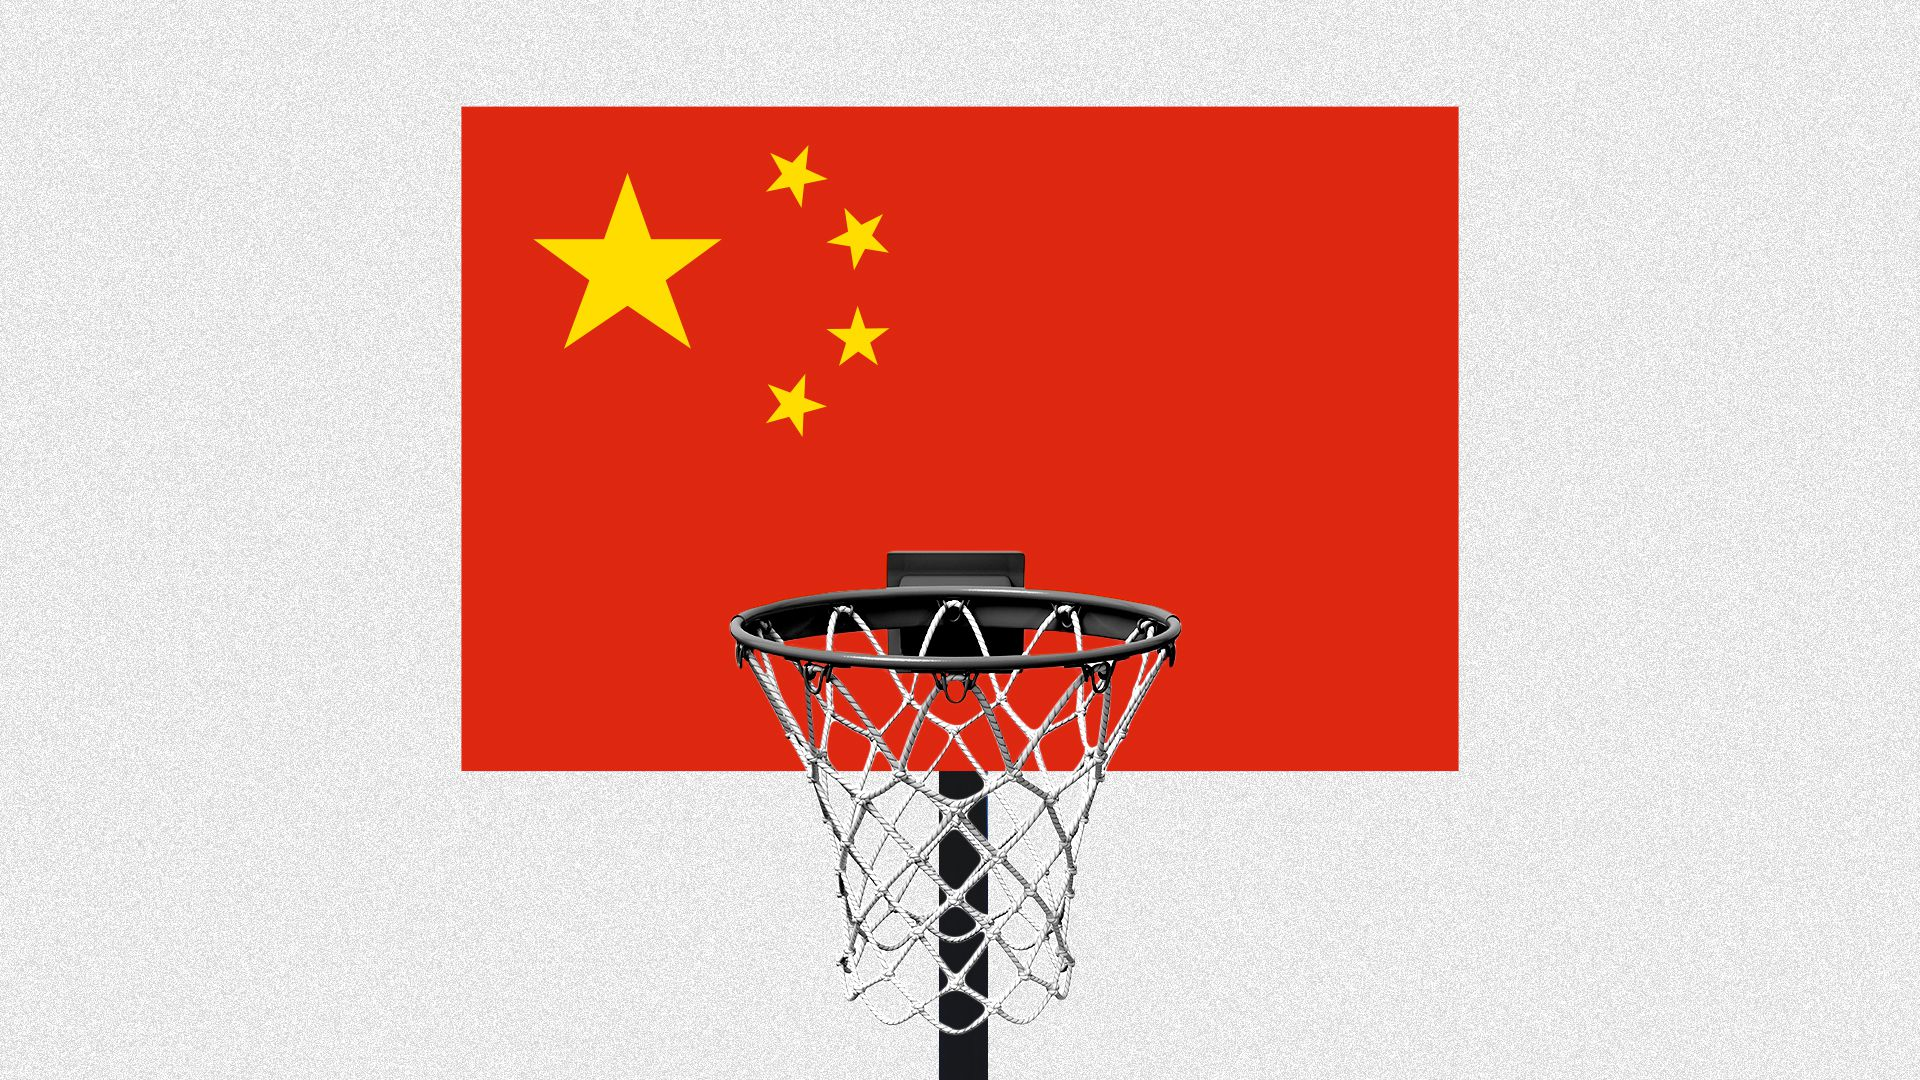 A backboard with the Chinese flag as the backboard